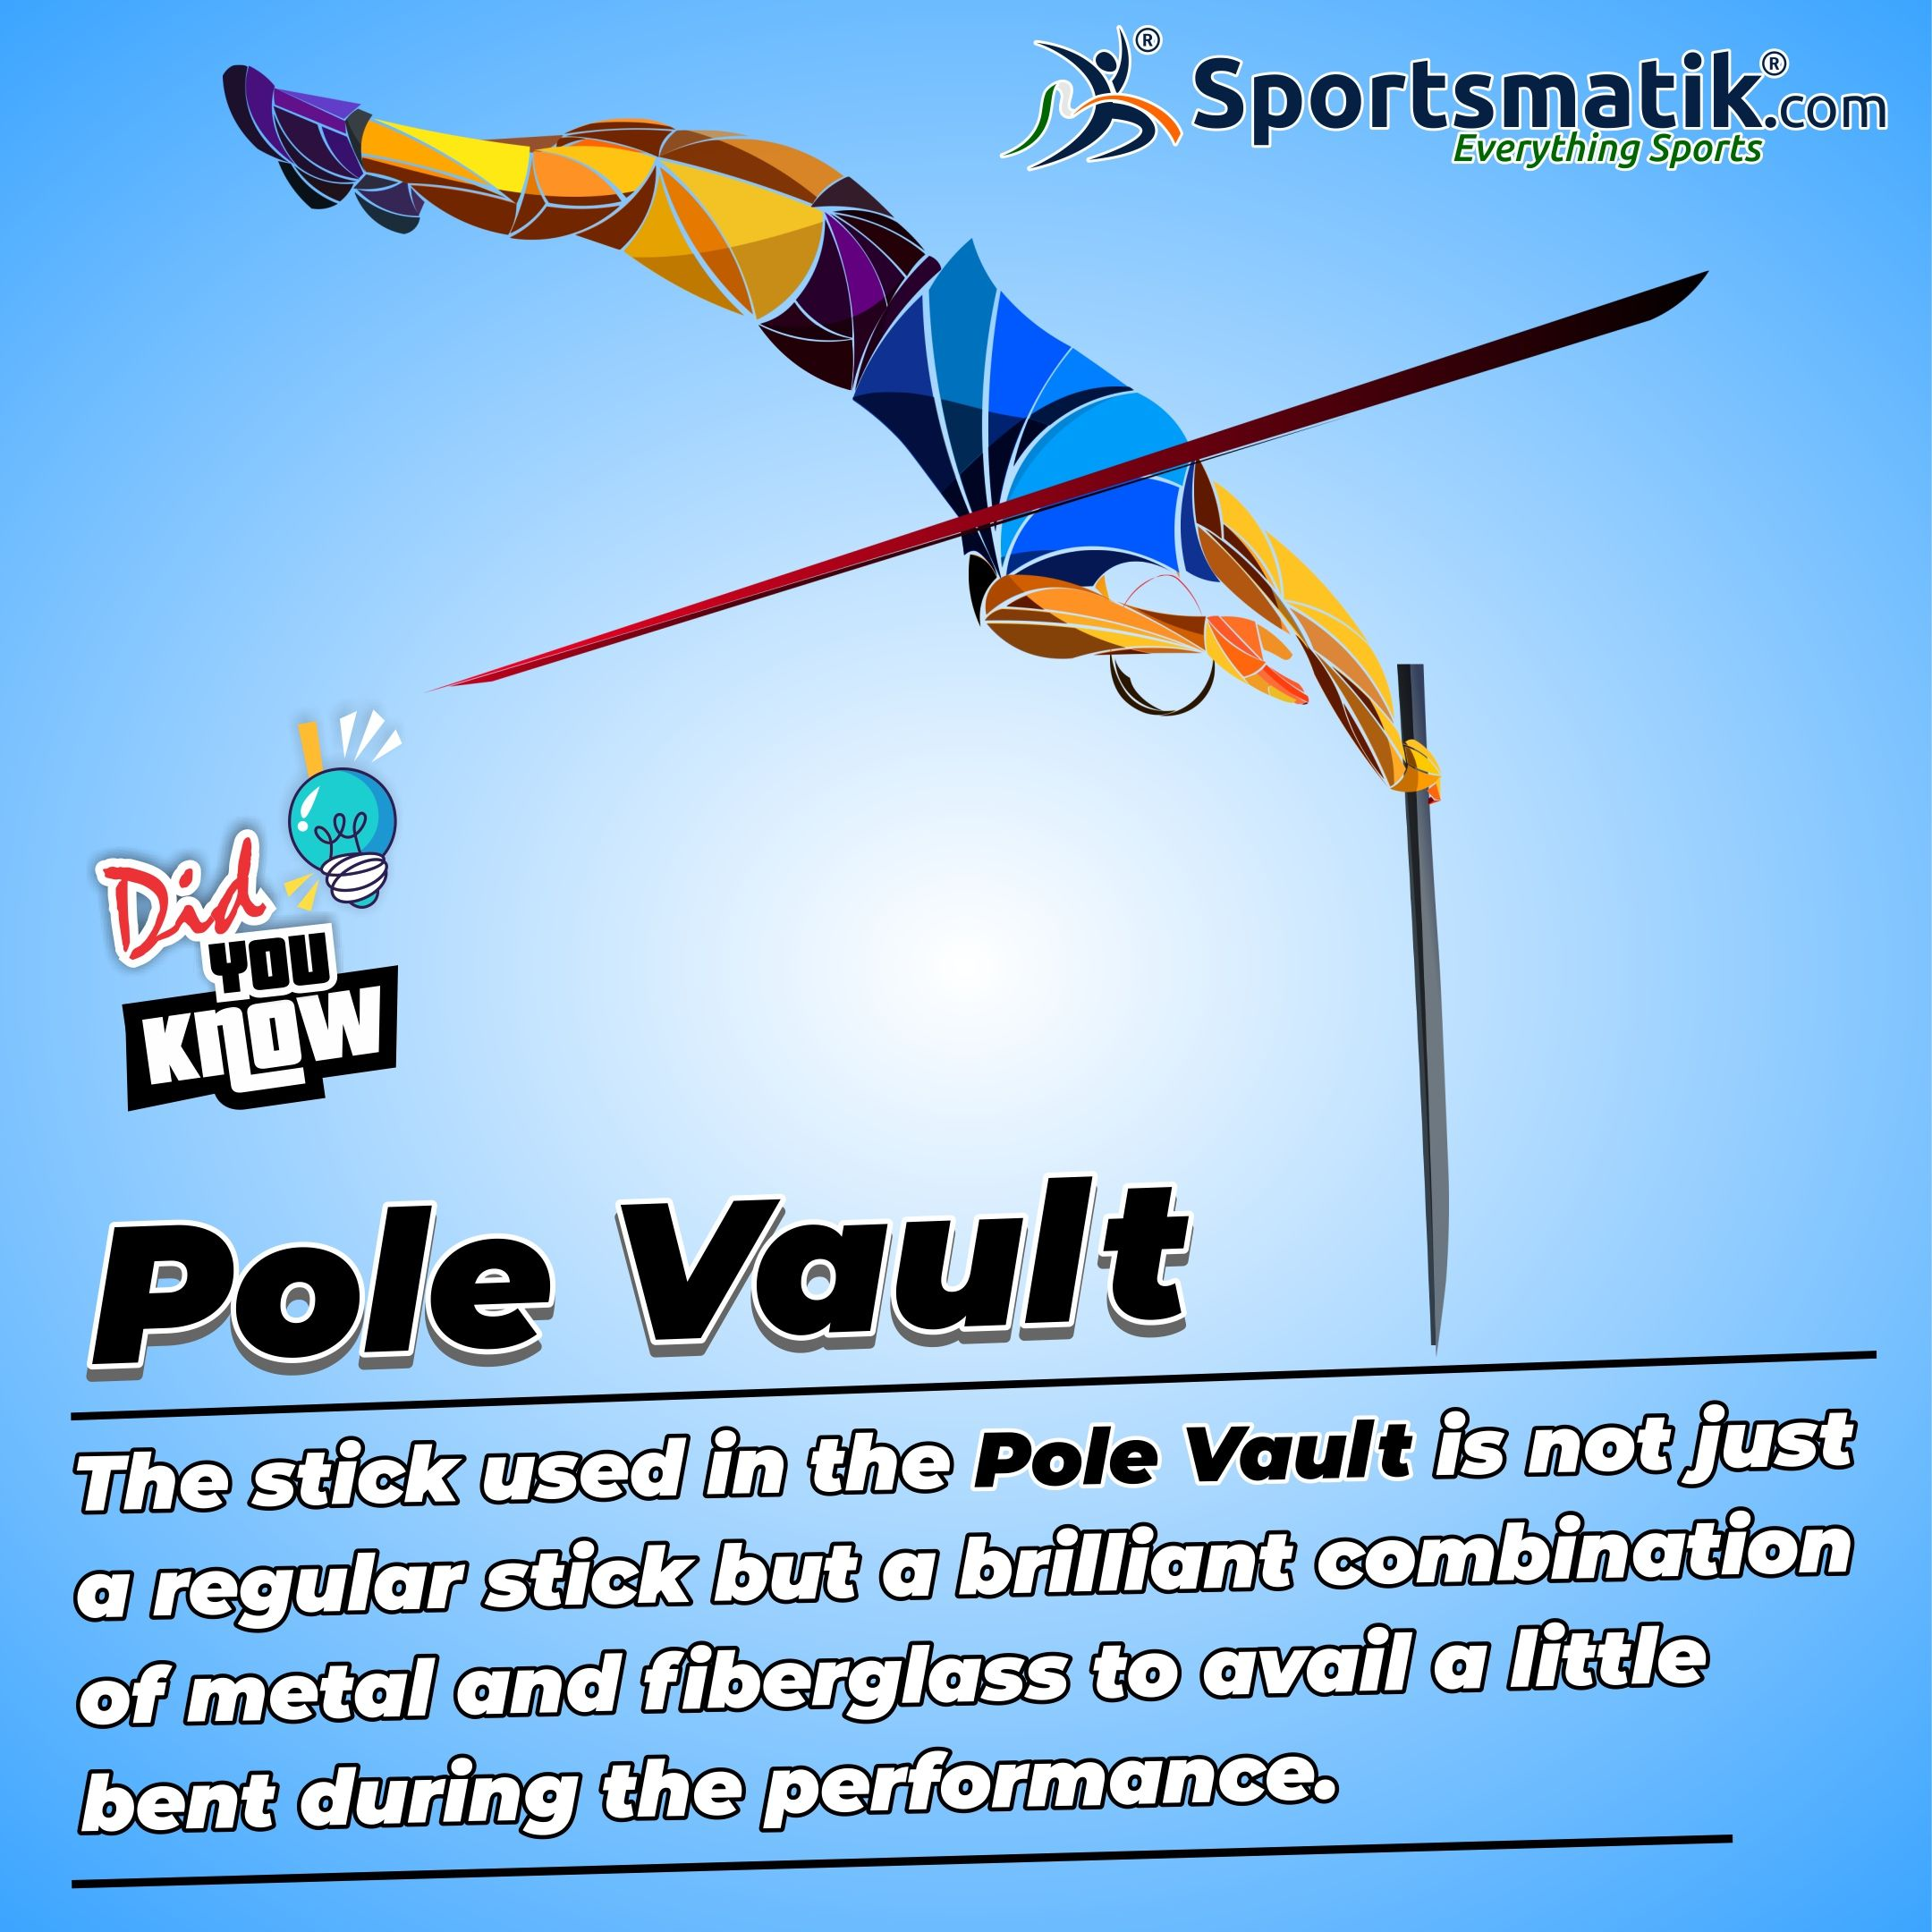 The Story Of Pole Vault All About Pole Vault Origin Of Pole Vault Pole Vault Vaulting Fun Facts